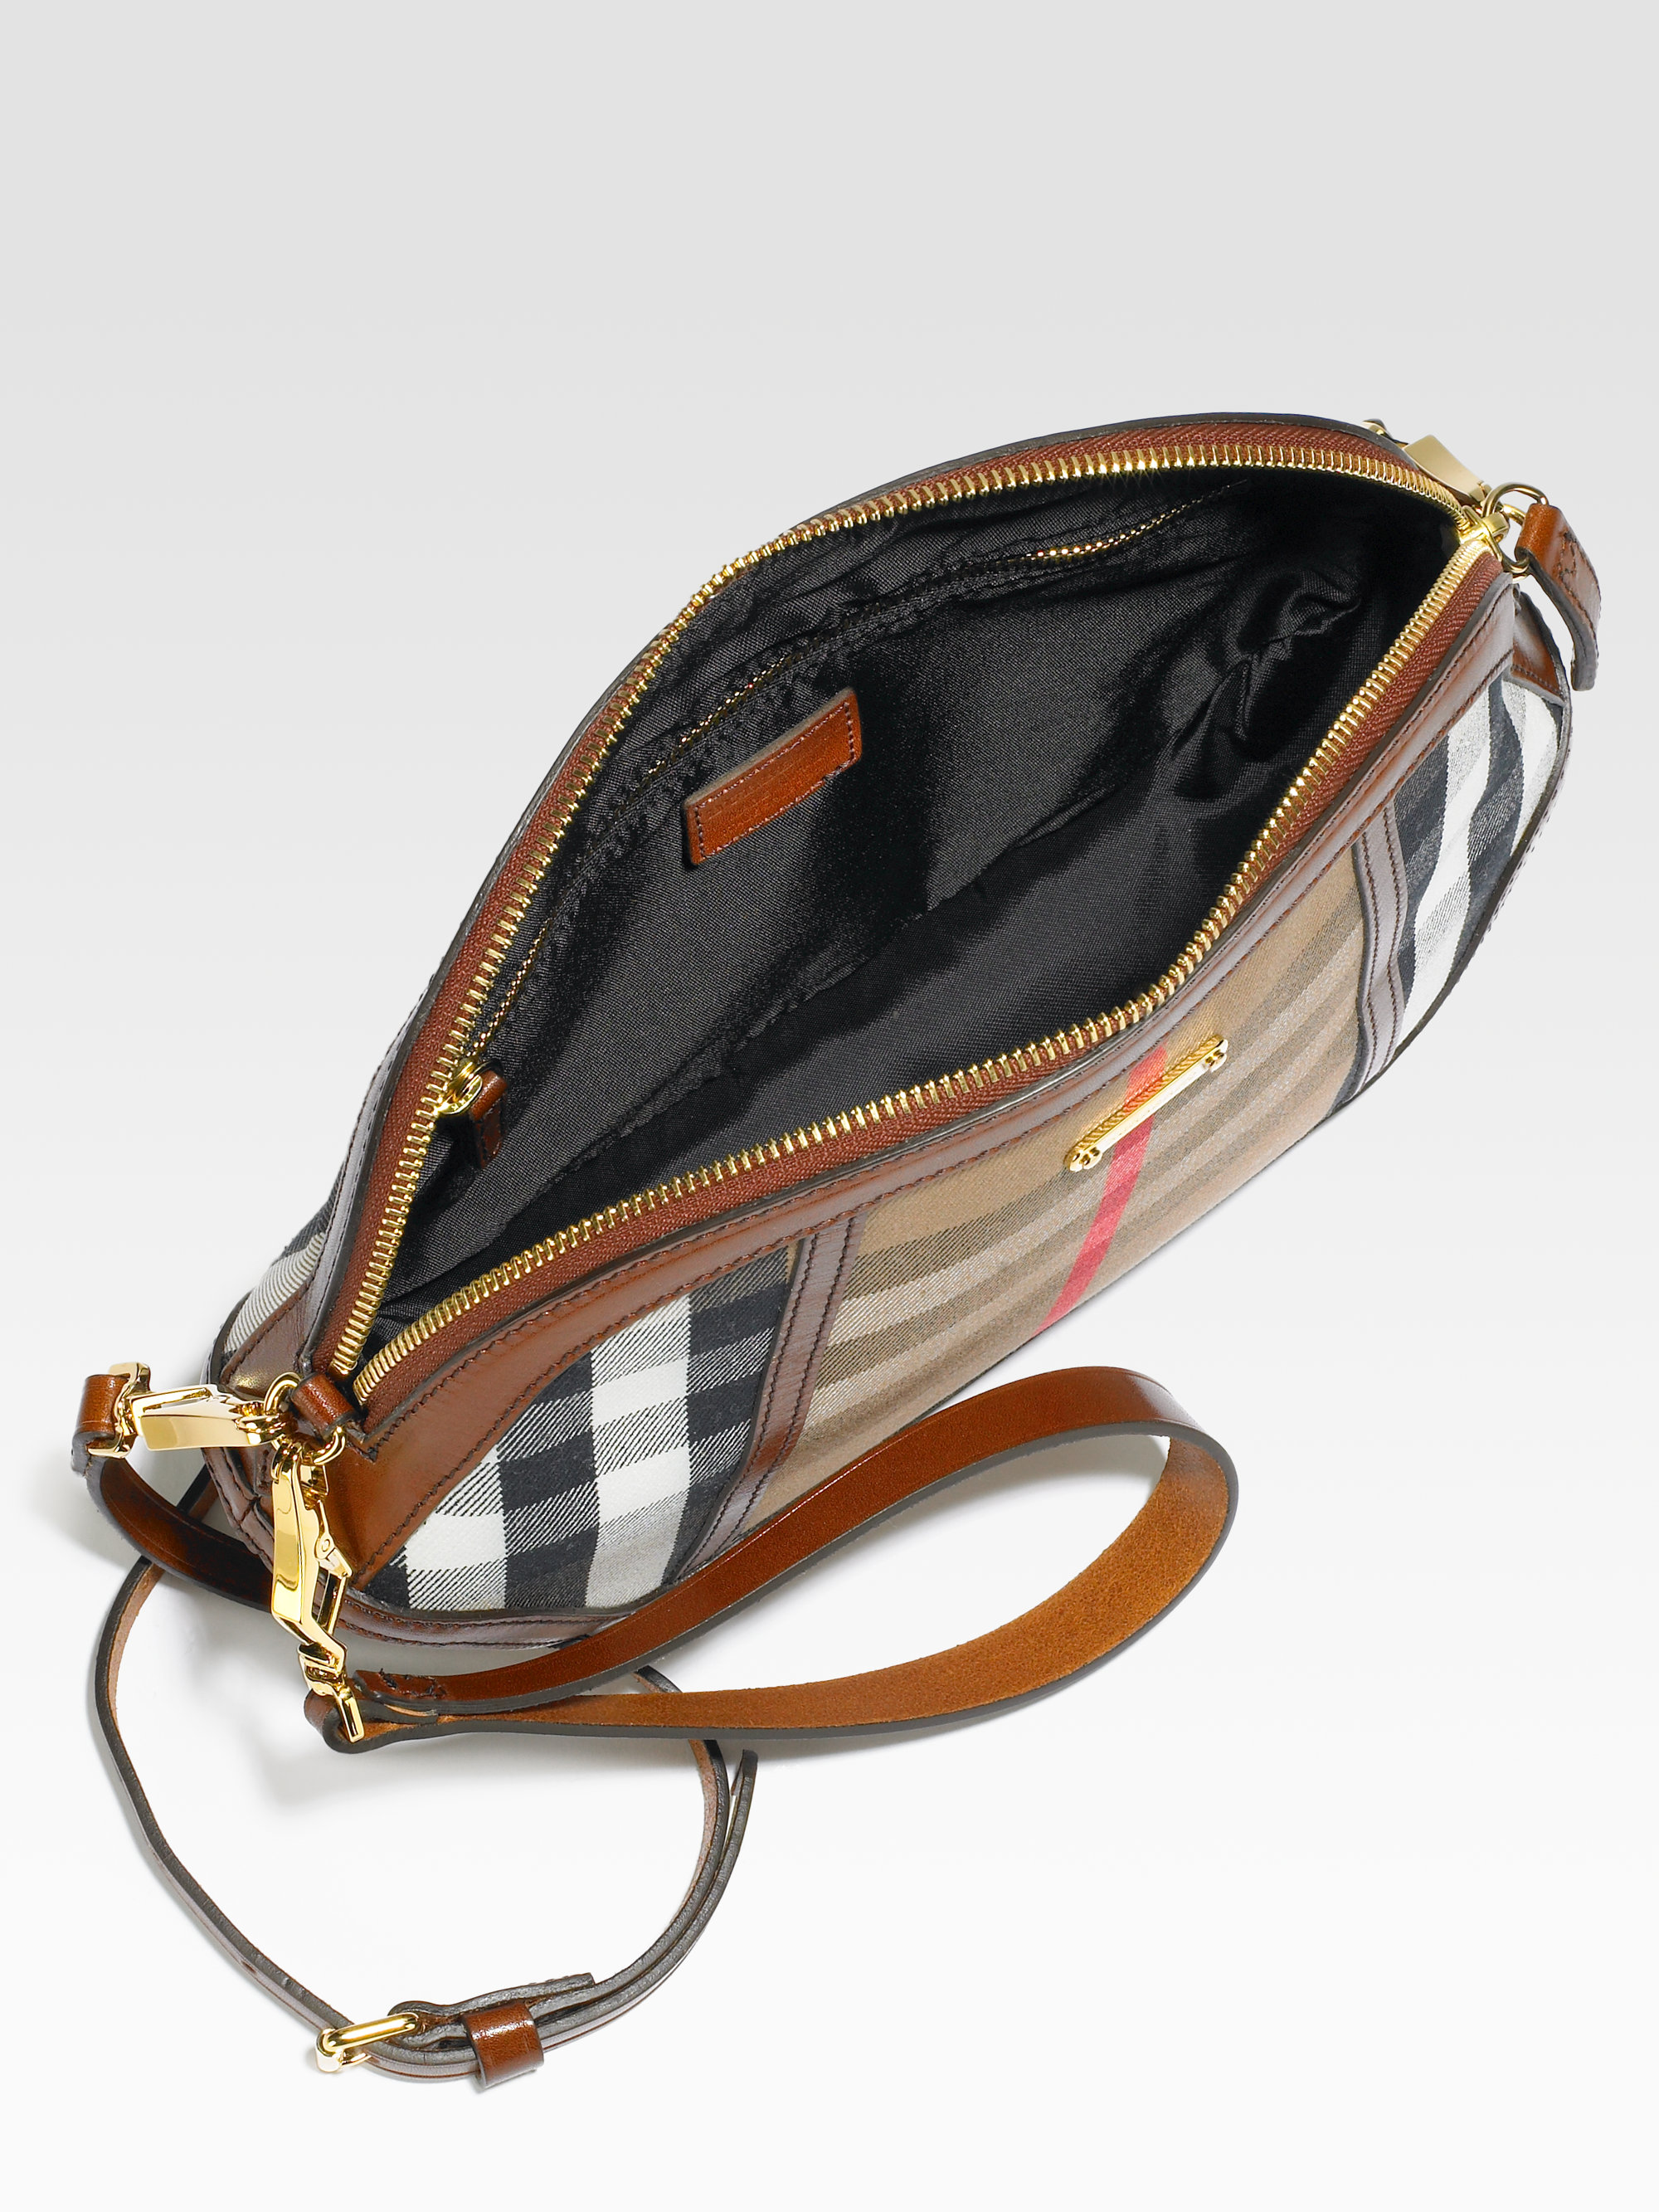 Lyst - Burberry Orchard Crossbody Bag in Brown a384e940a56e2